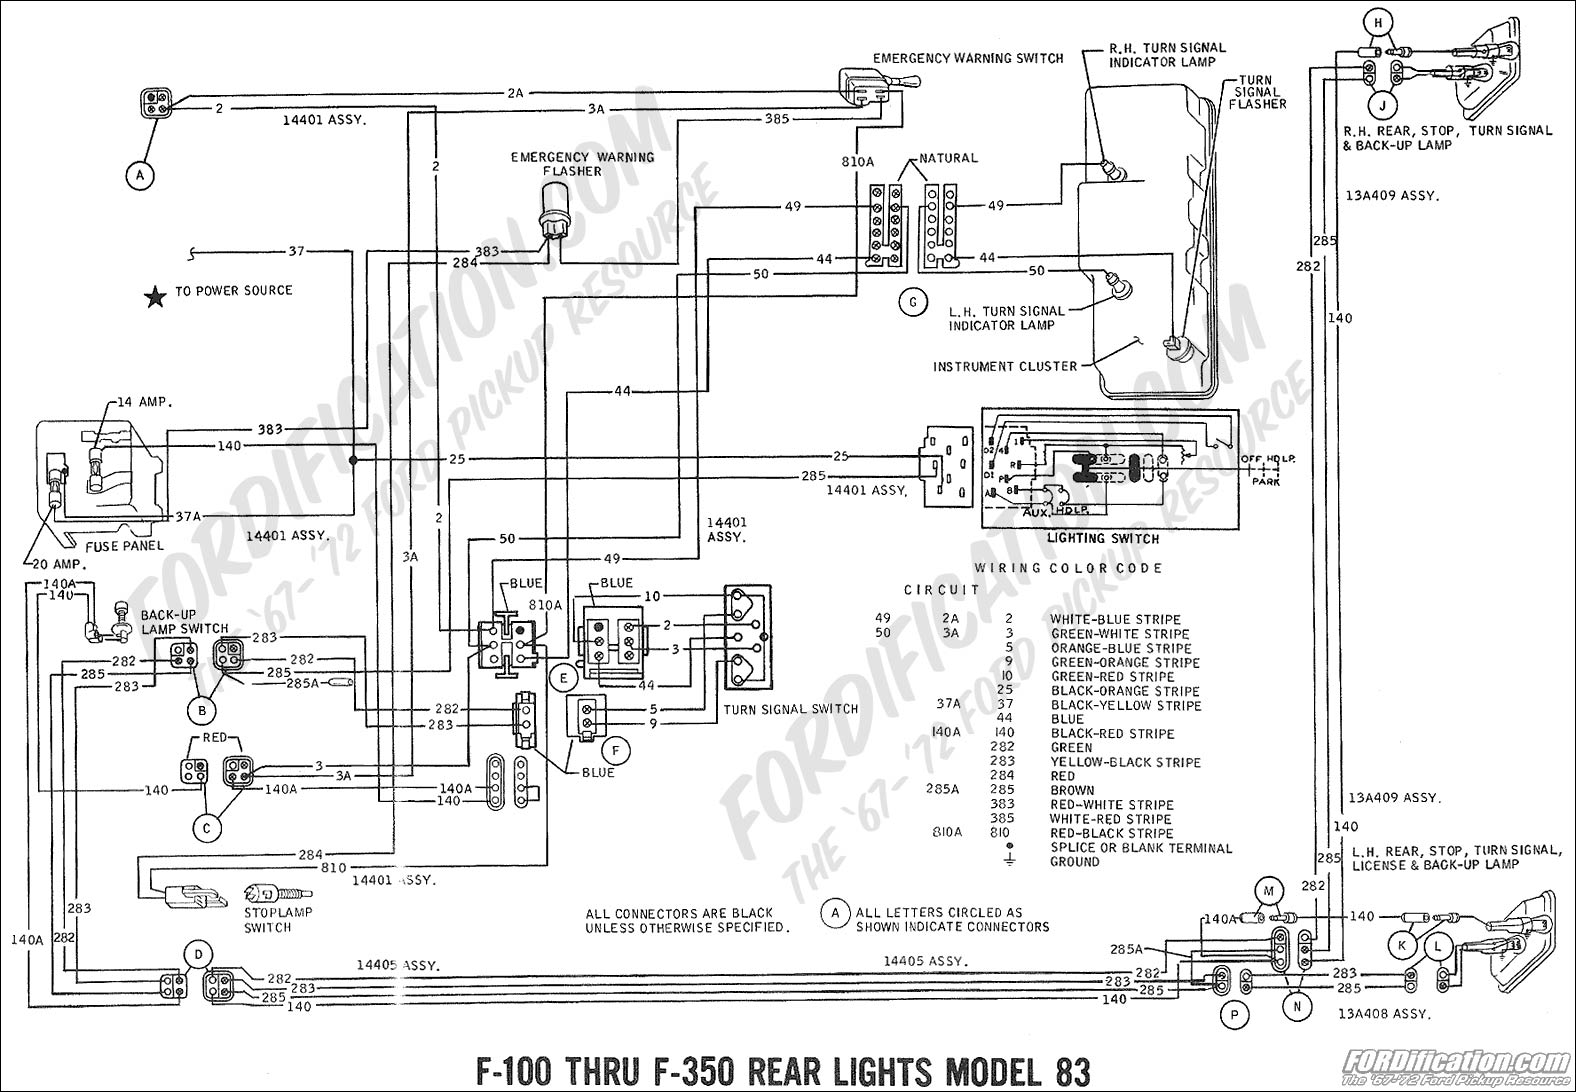 wiring_69rearlights mdl83 2 1977 ford f100 alternator wiring diagram wiring diagram and 1971 ford f100 wiring diagram at webbmarketing.co